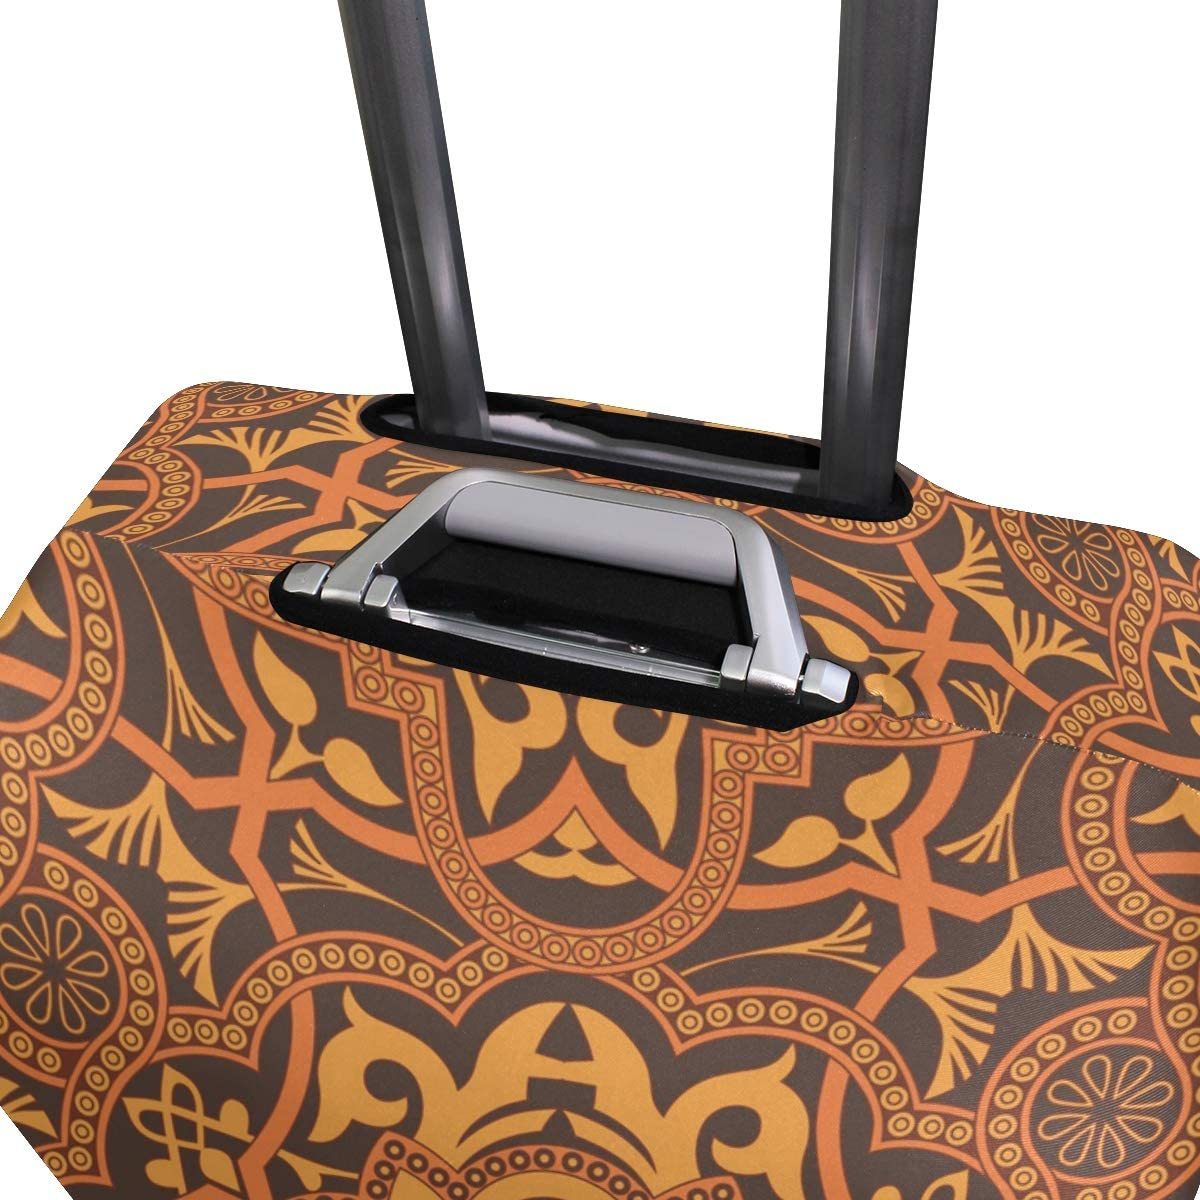 Elastic Fits 26-28 Inch Symmetrical Stylish Ornament Travel Elastic Suitcase Protector Luggage Cover